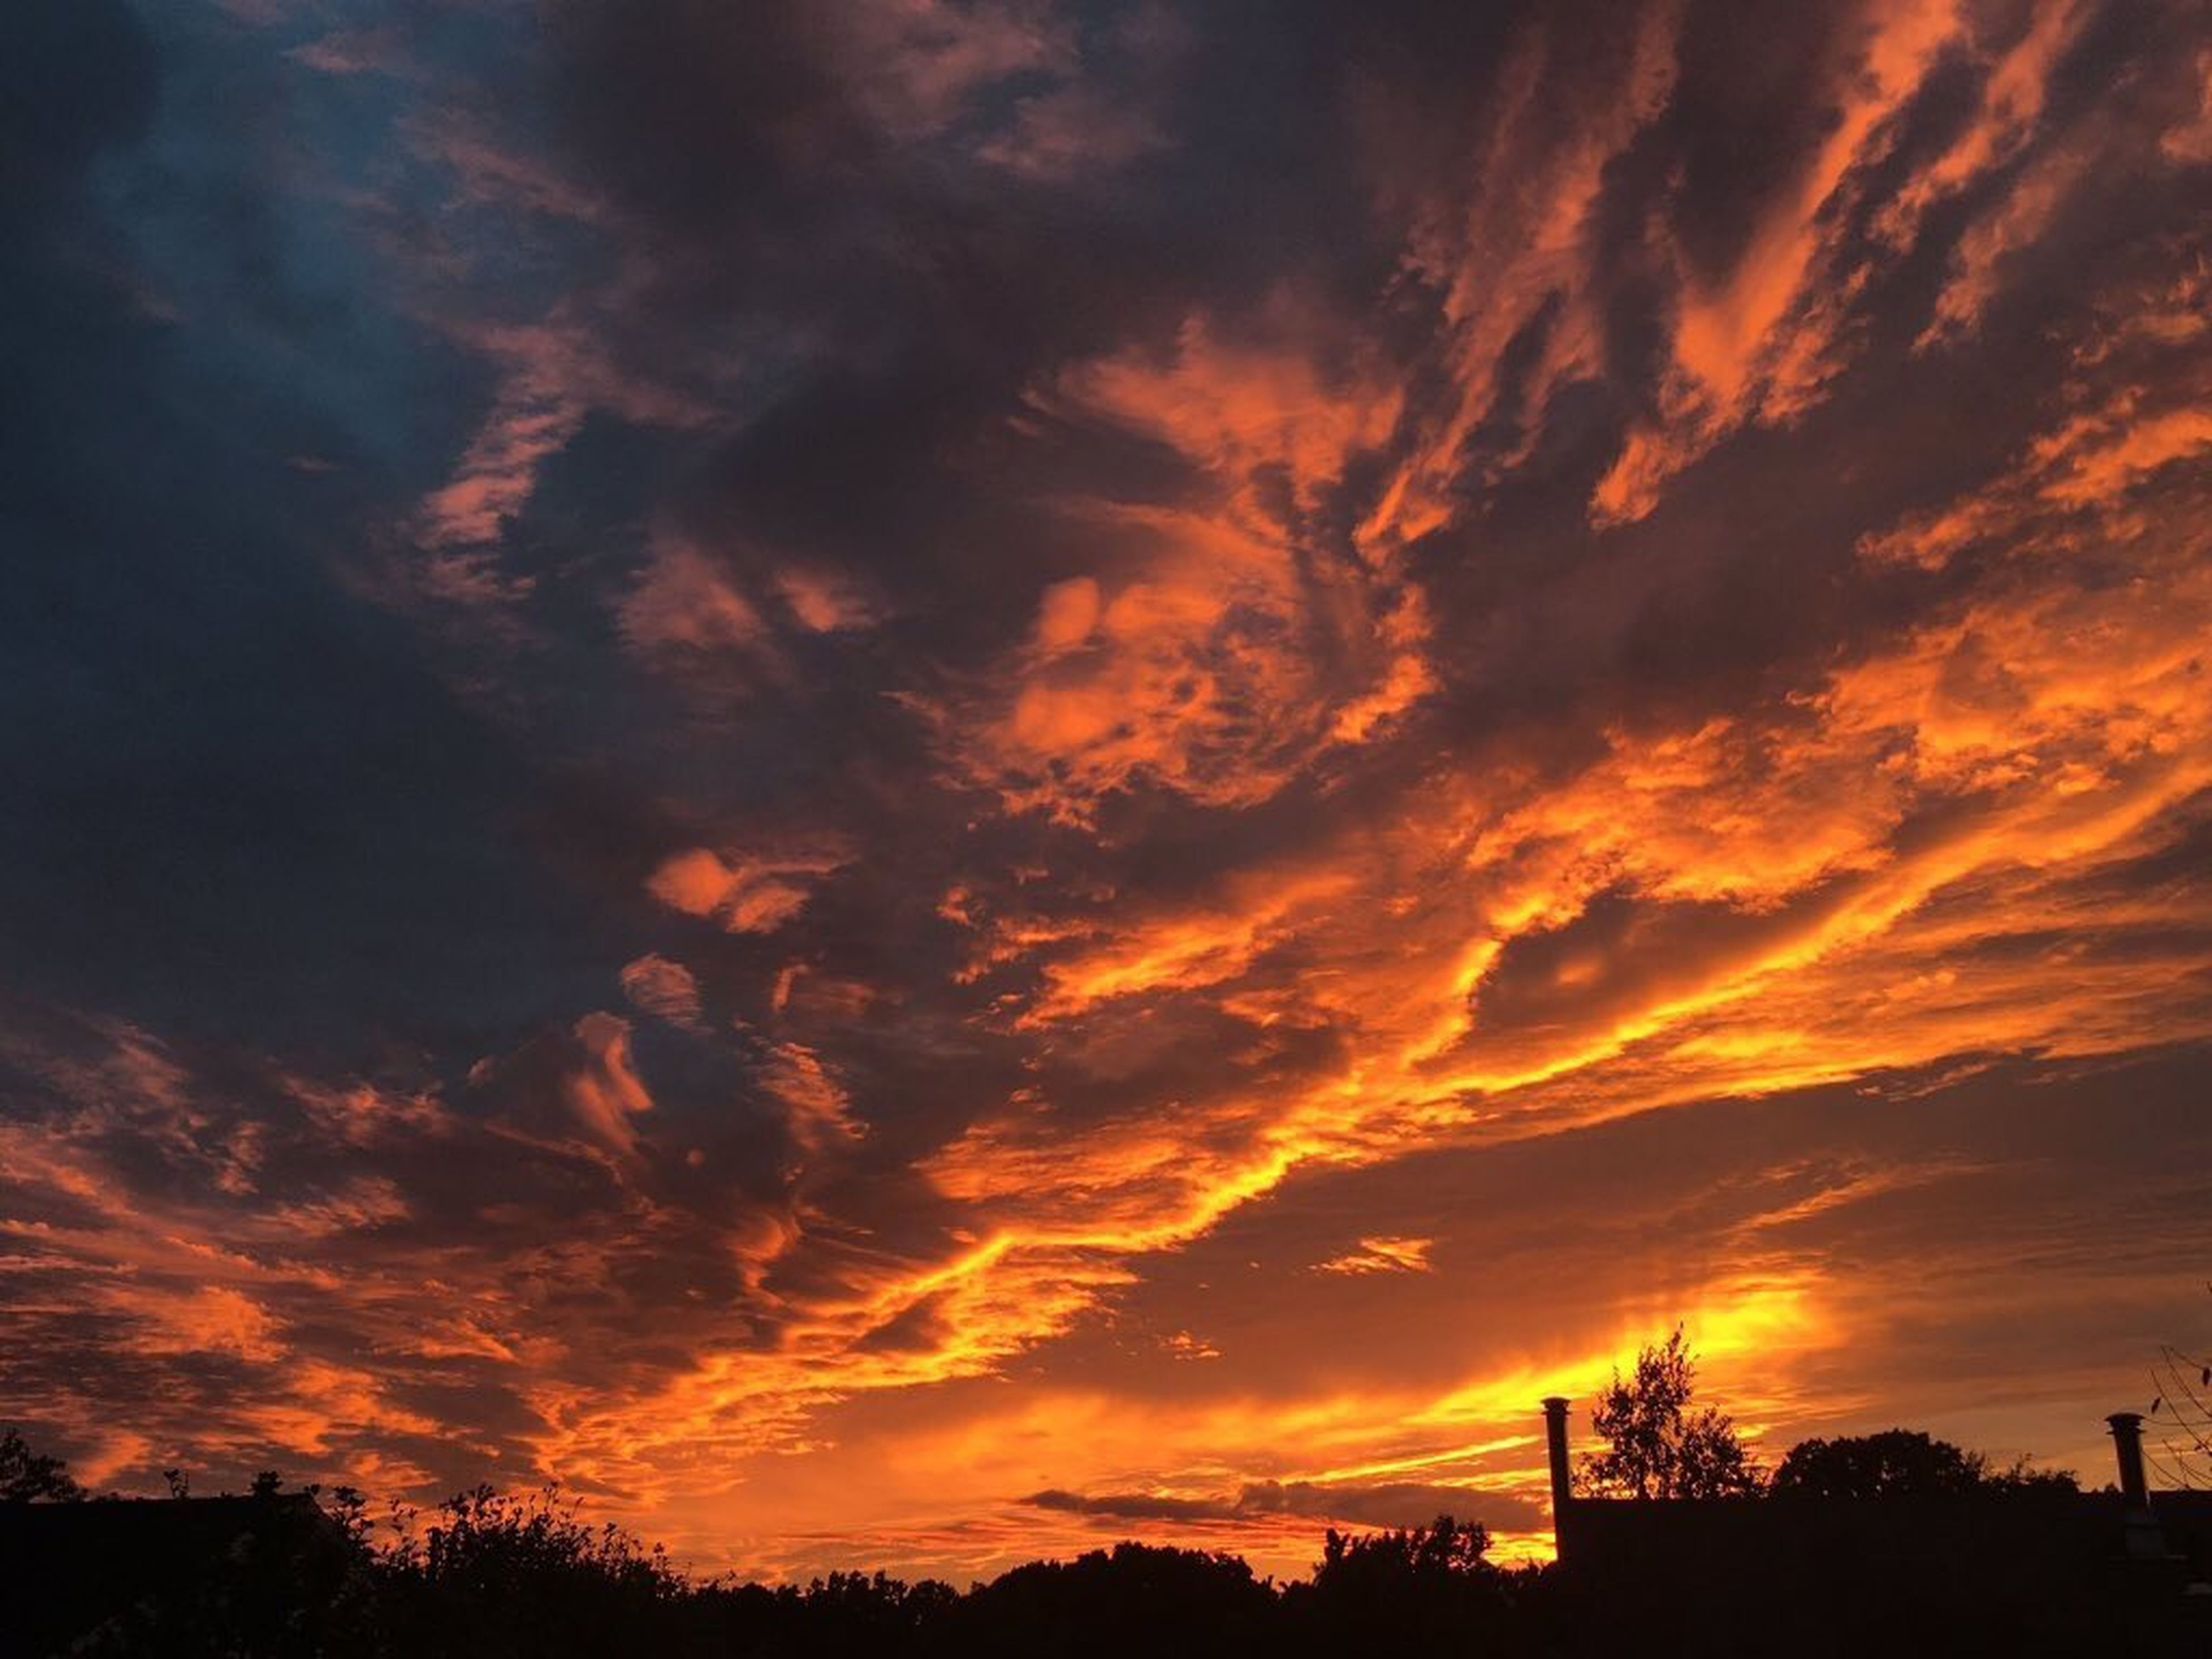 sunset, sky, beauty in nature, nature, cloud - sky, scenics, orange color, low angle view, silhouette, idyllic, no people, tranquility, dramatic sky, outdoors, astronomy